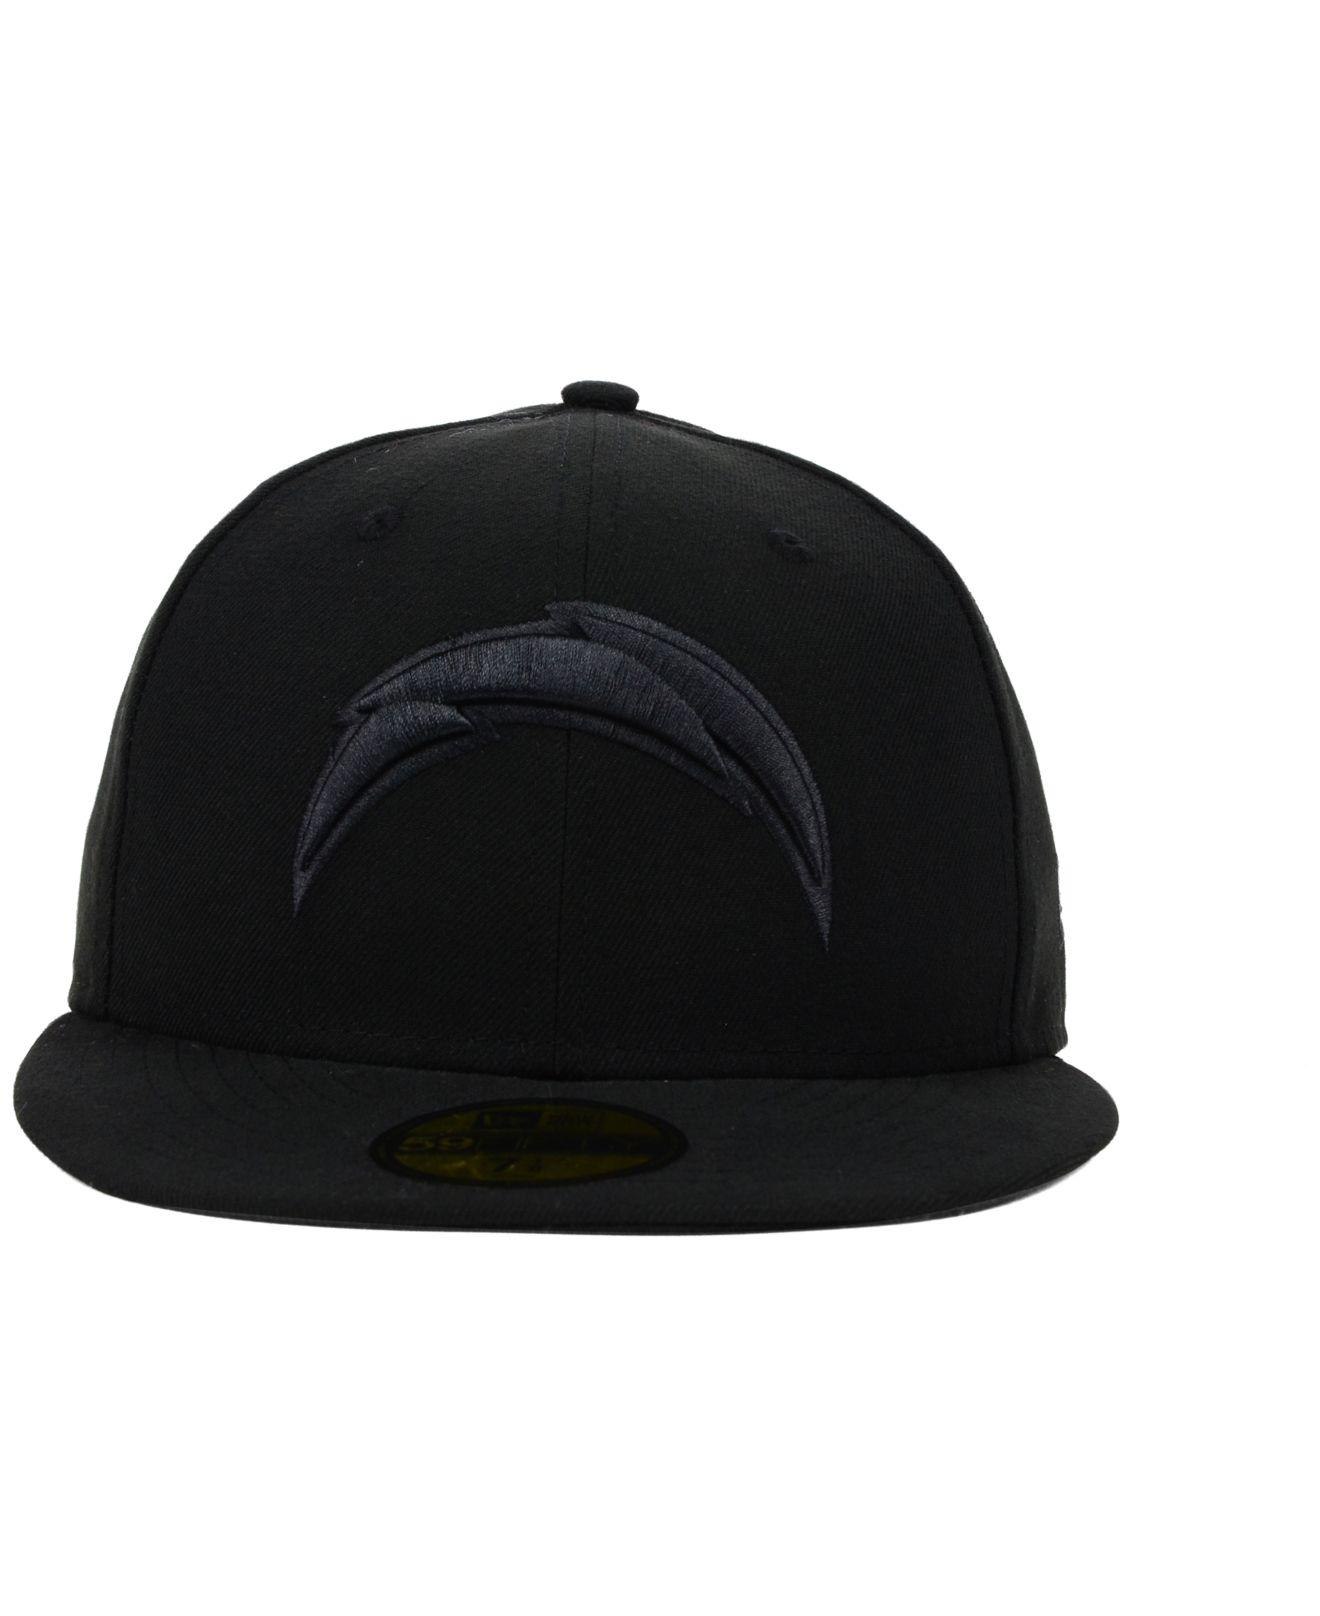 best service 87e19 78474 KTZ Tampa Bay Rays Black On Metallic Gold 59fifty Cap in Black for Men -  Save 46% - Lyst